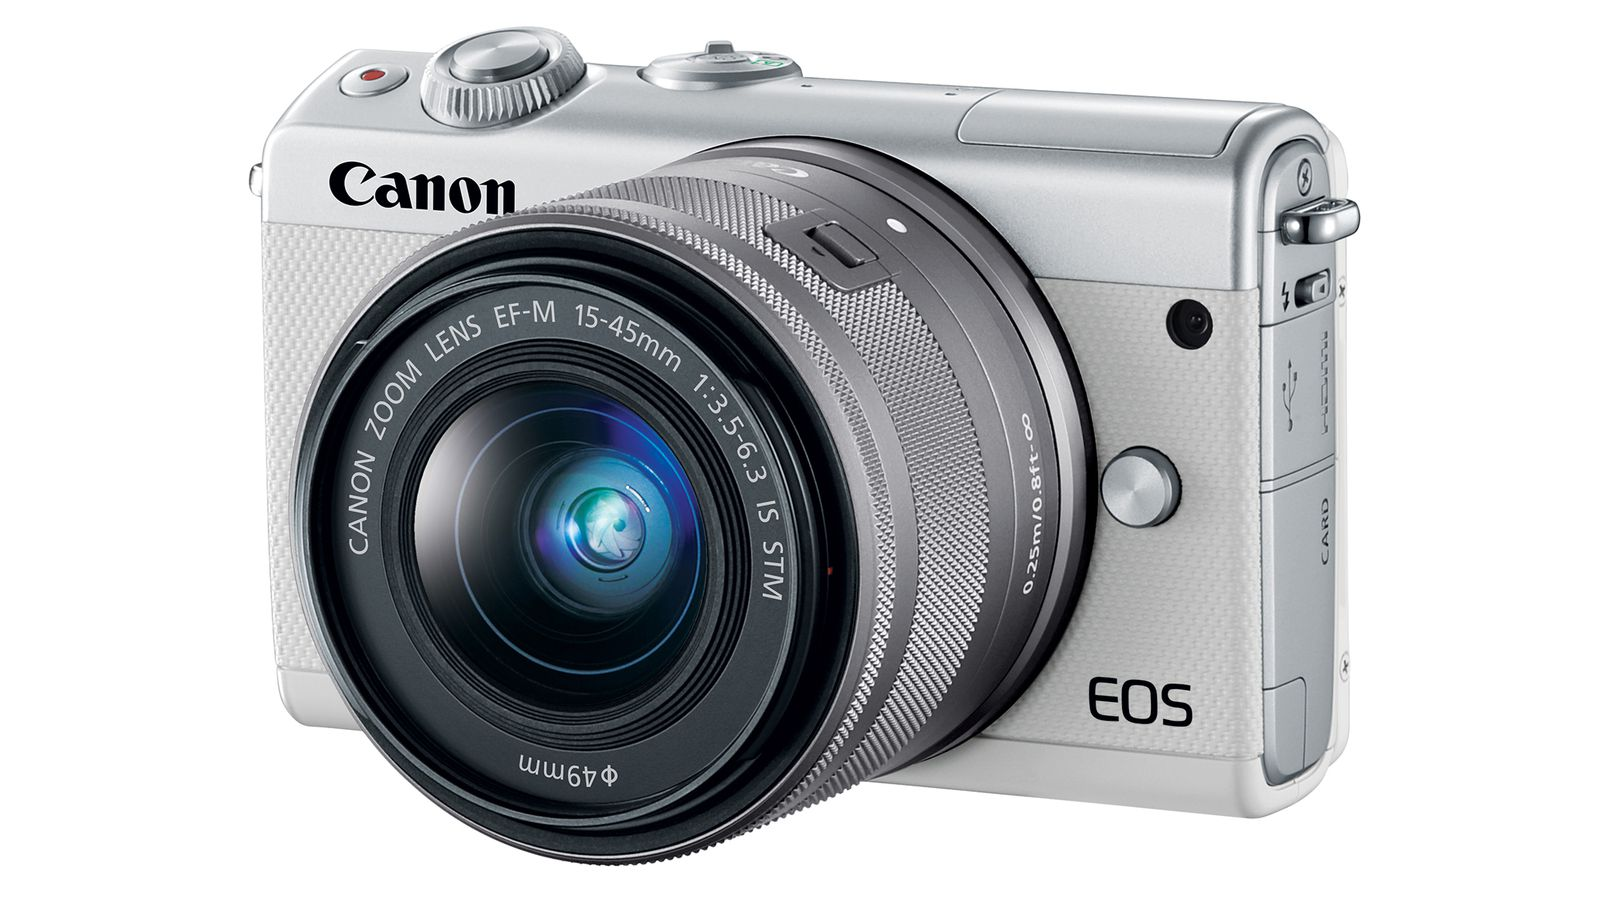 Canon's new mirrorless camera is like an M5 in a smaller (and cheaper) body